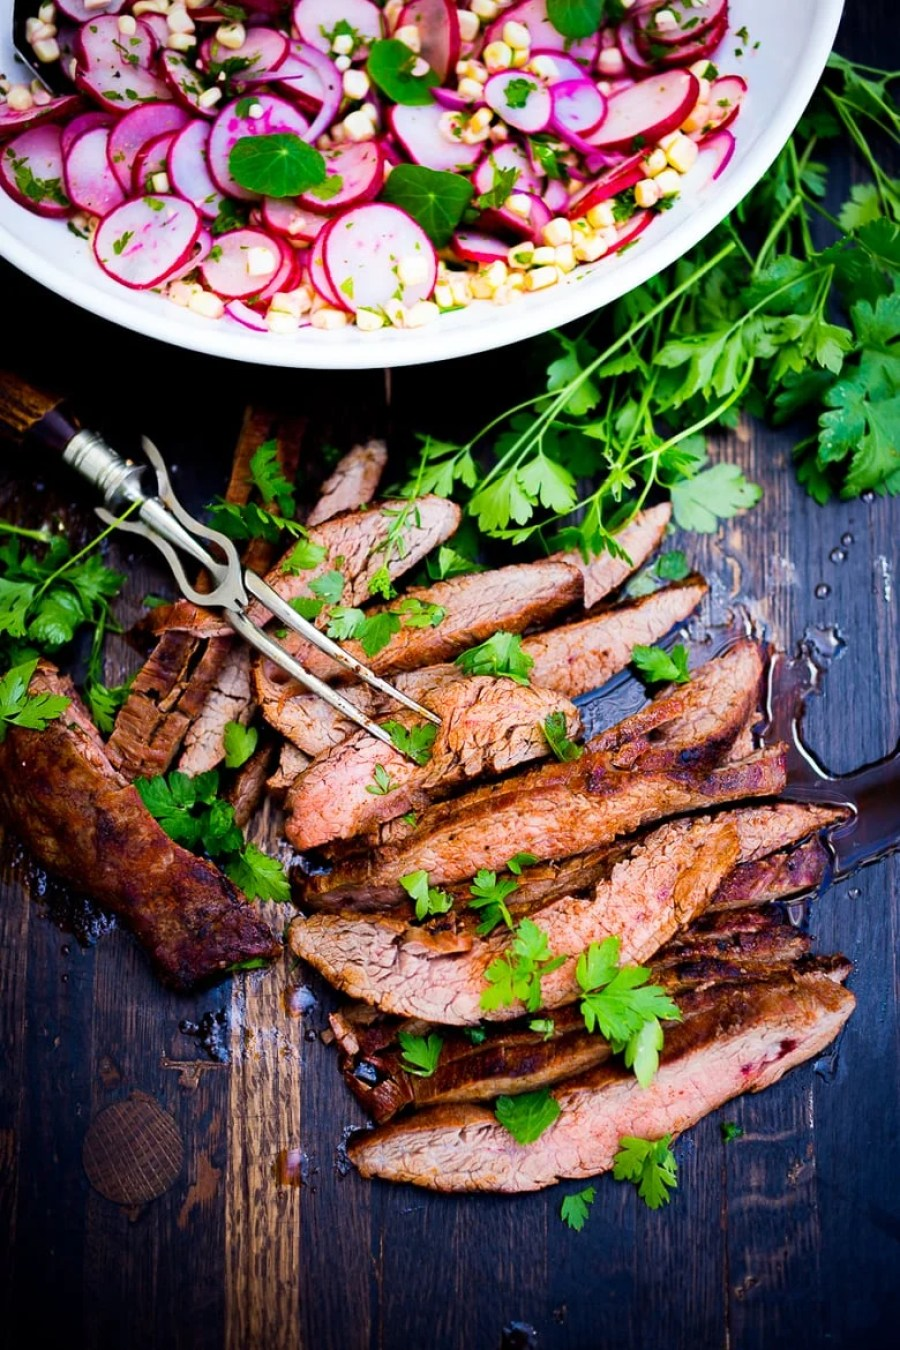 Grilled Flank Steak with Corn & Radish Salad